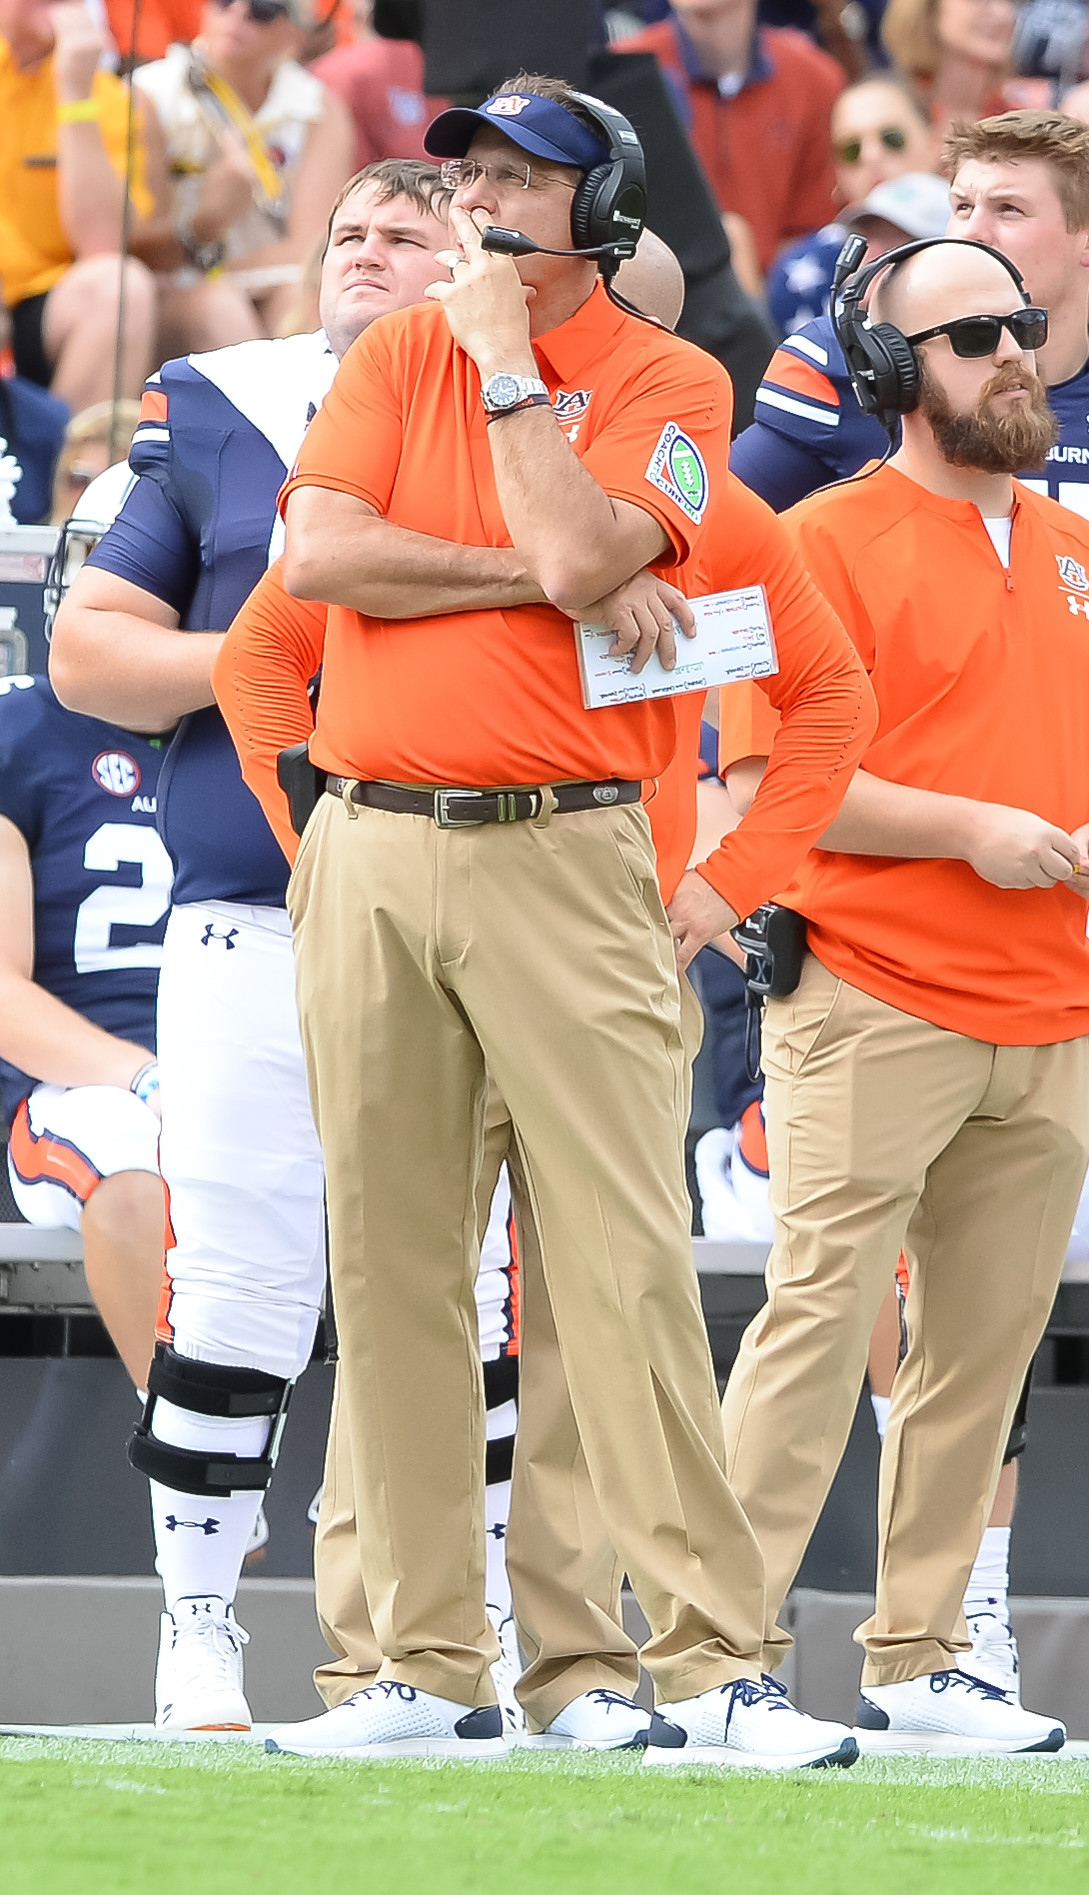 Auburn Tigers head coach Gus Malzahn looks on during the first half of Saturday's game, at Jordan Hare Stadium in Auburn AL. Daily Mountain Eagle -  Jeff Johnsey